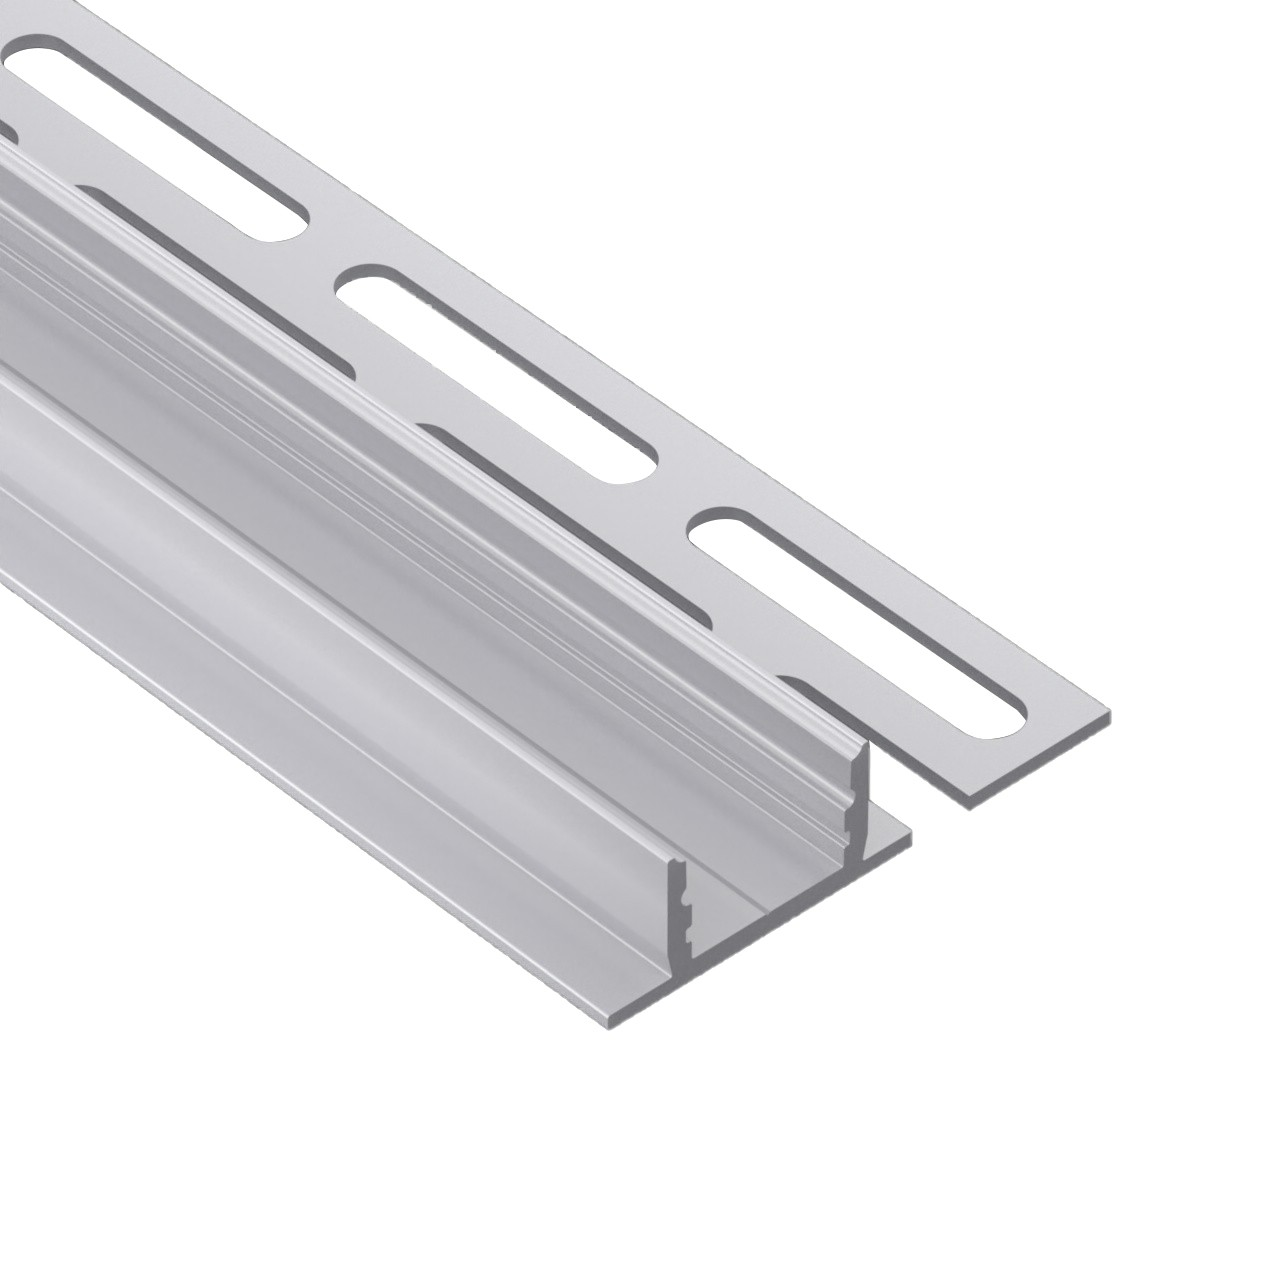 CT1 Tile Plano End Edge LED Perfil